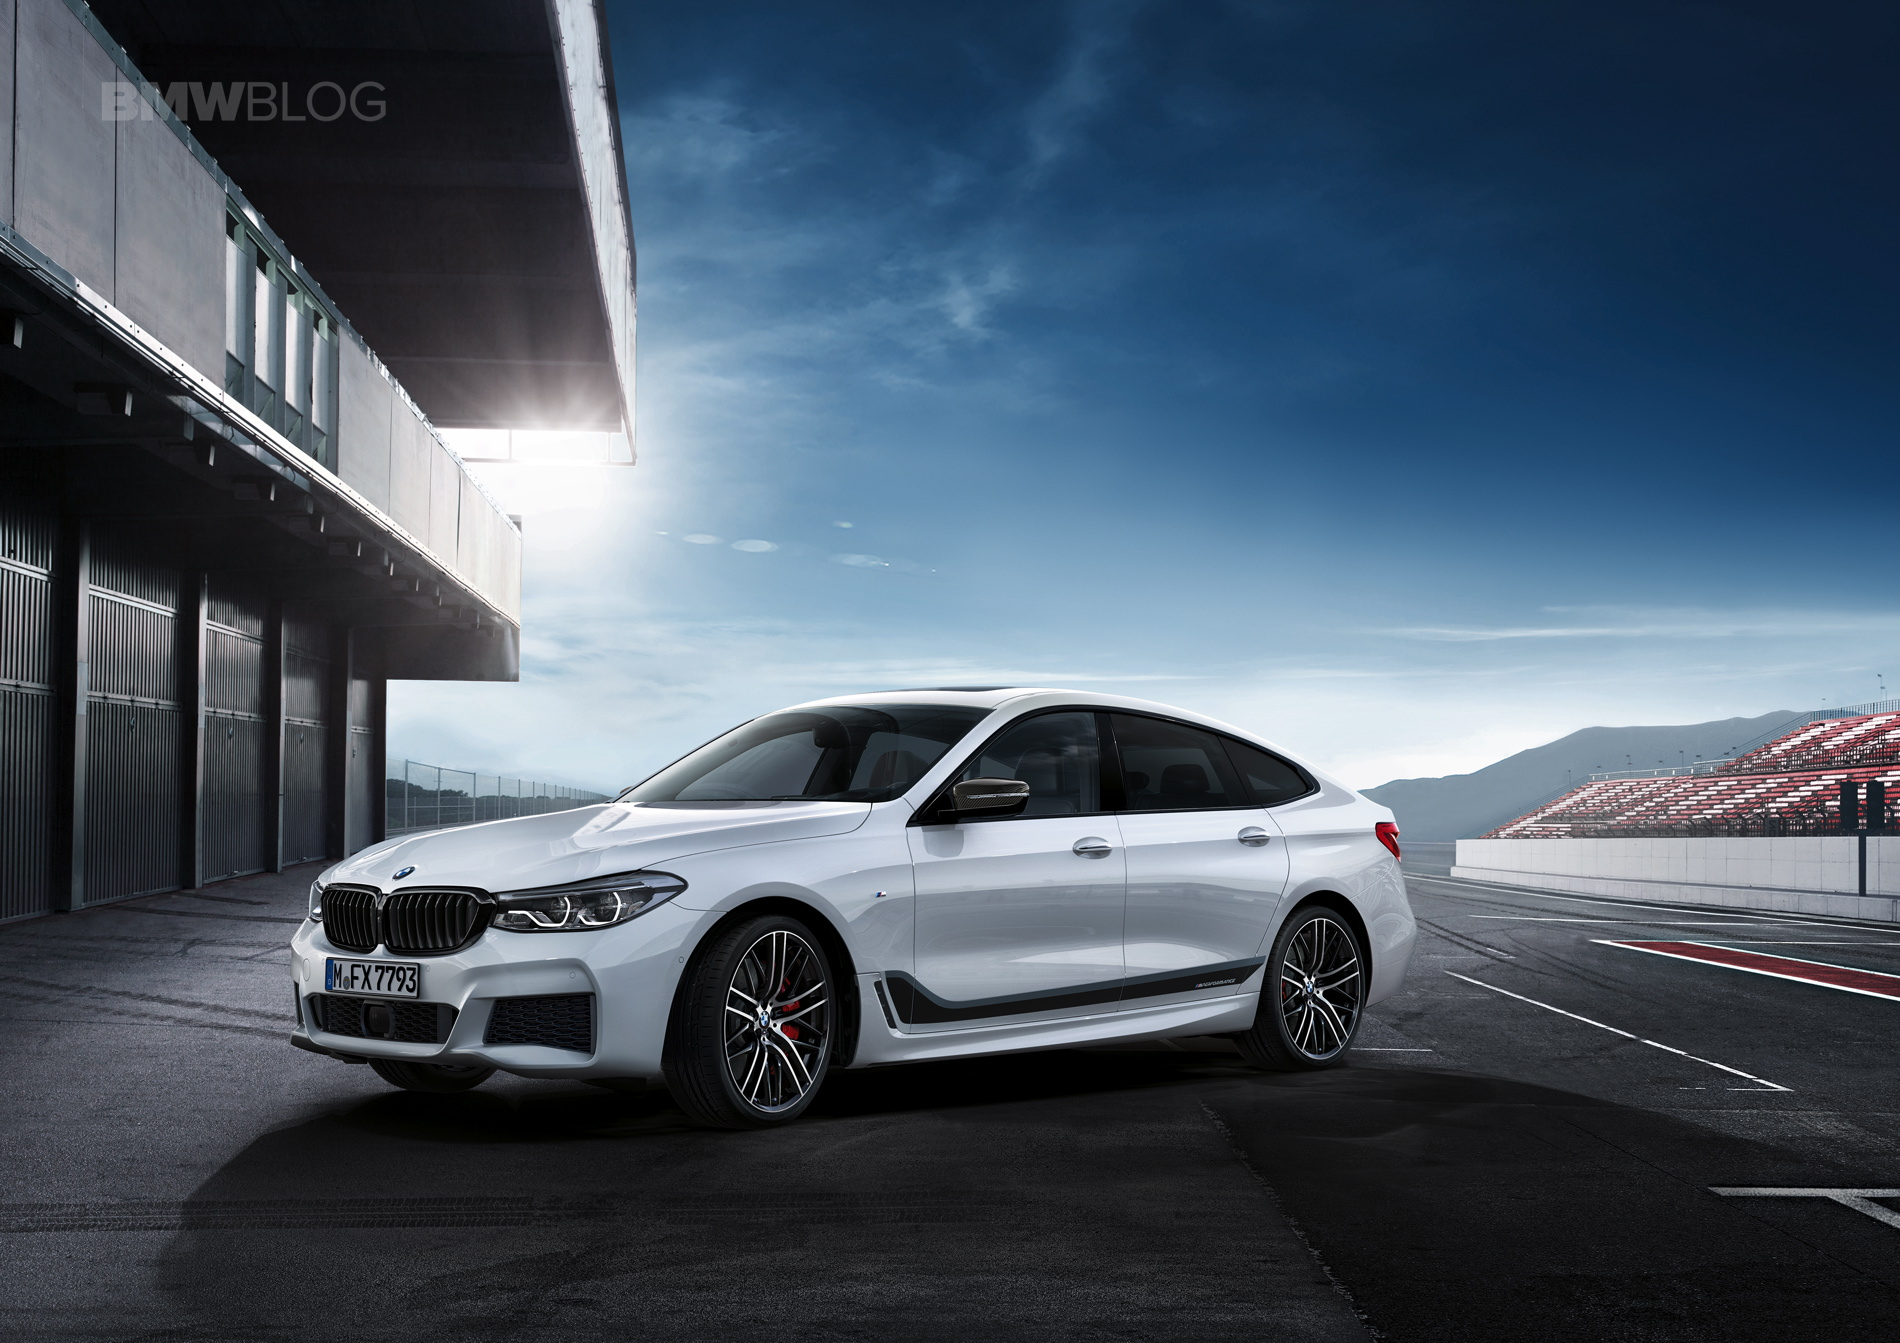 Bmw M Performance Parts For The New Bmw 6 Series Gran Turismo